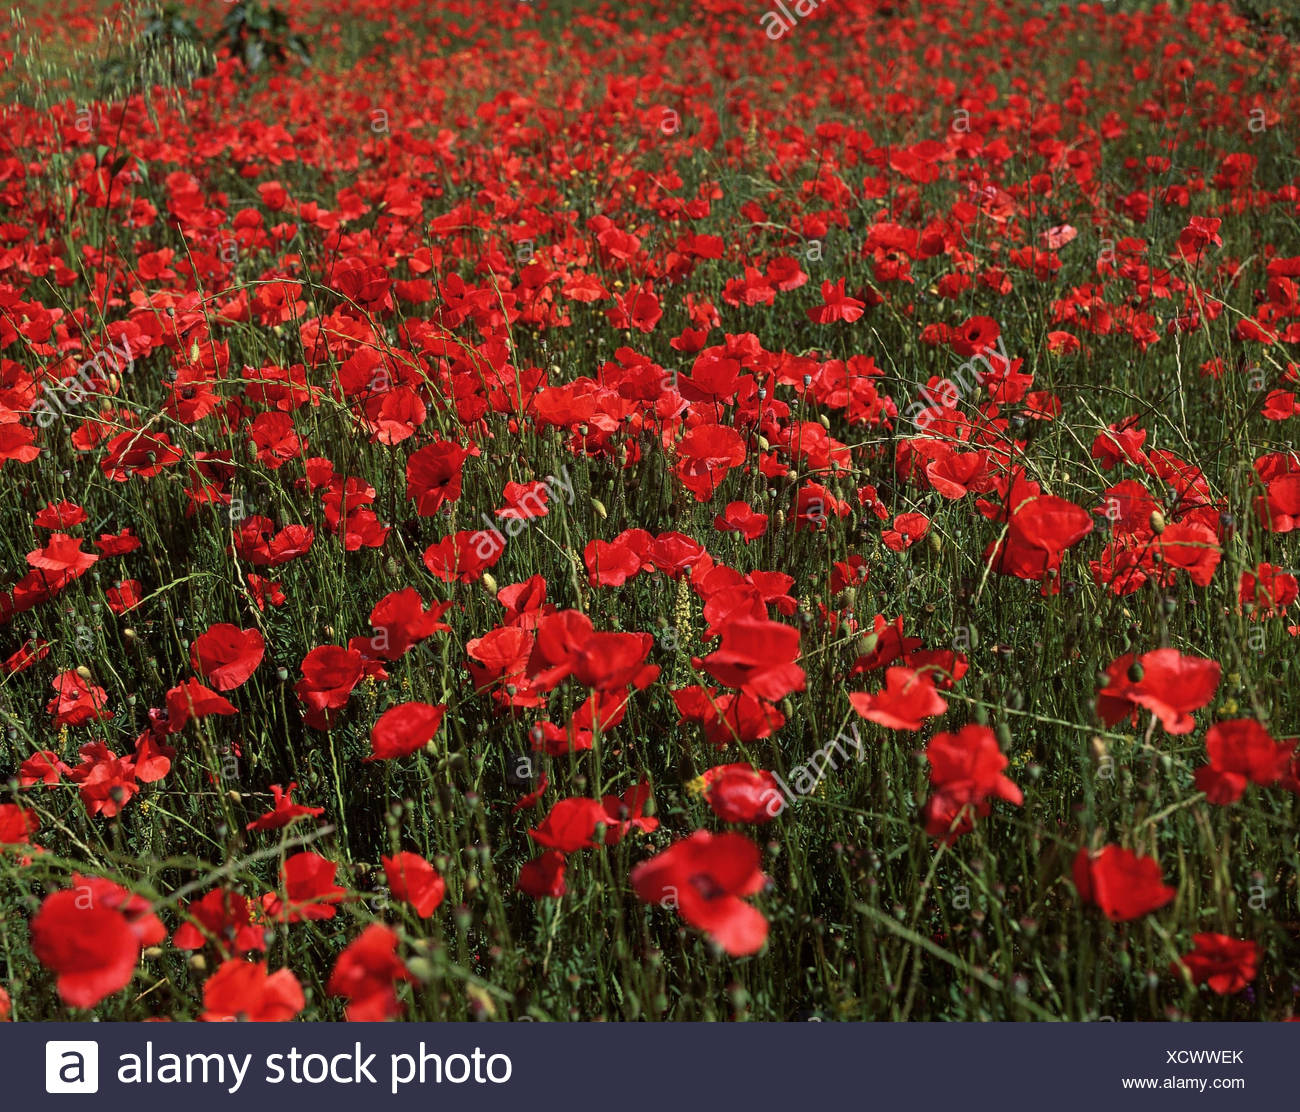 Meadow poppies papaver spec flower plant red poppy seed meadow poppies papaver spec flower plant red poppy seed flowers flower meadow blossom blossoms summers mightylinksfo